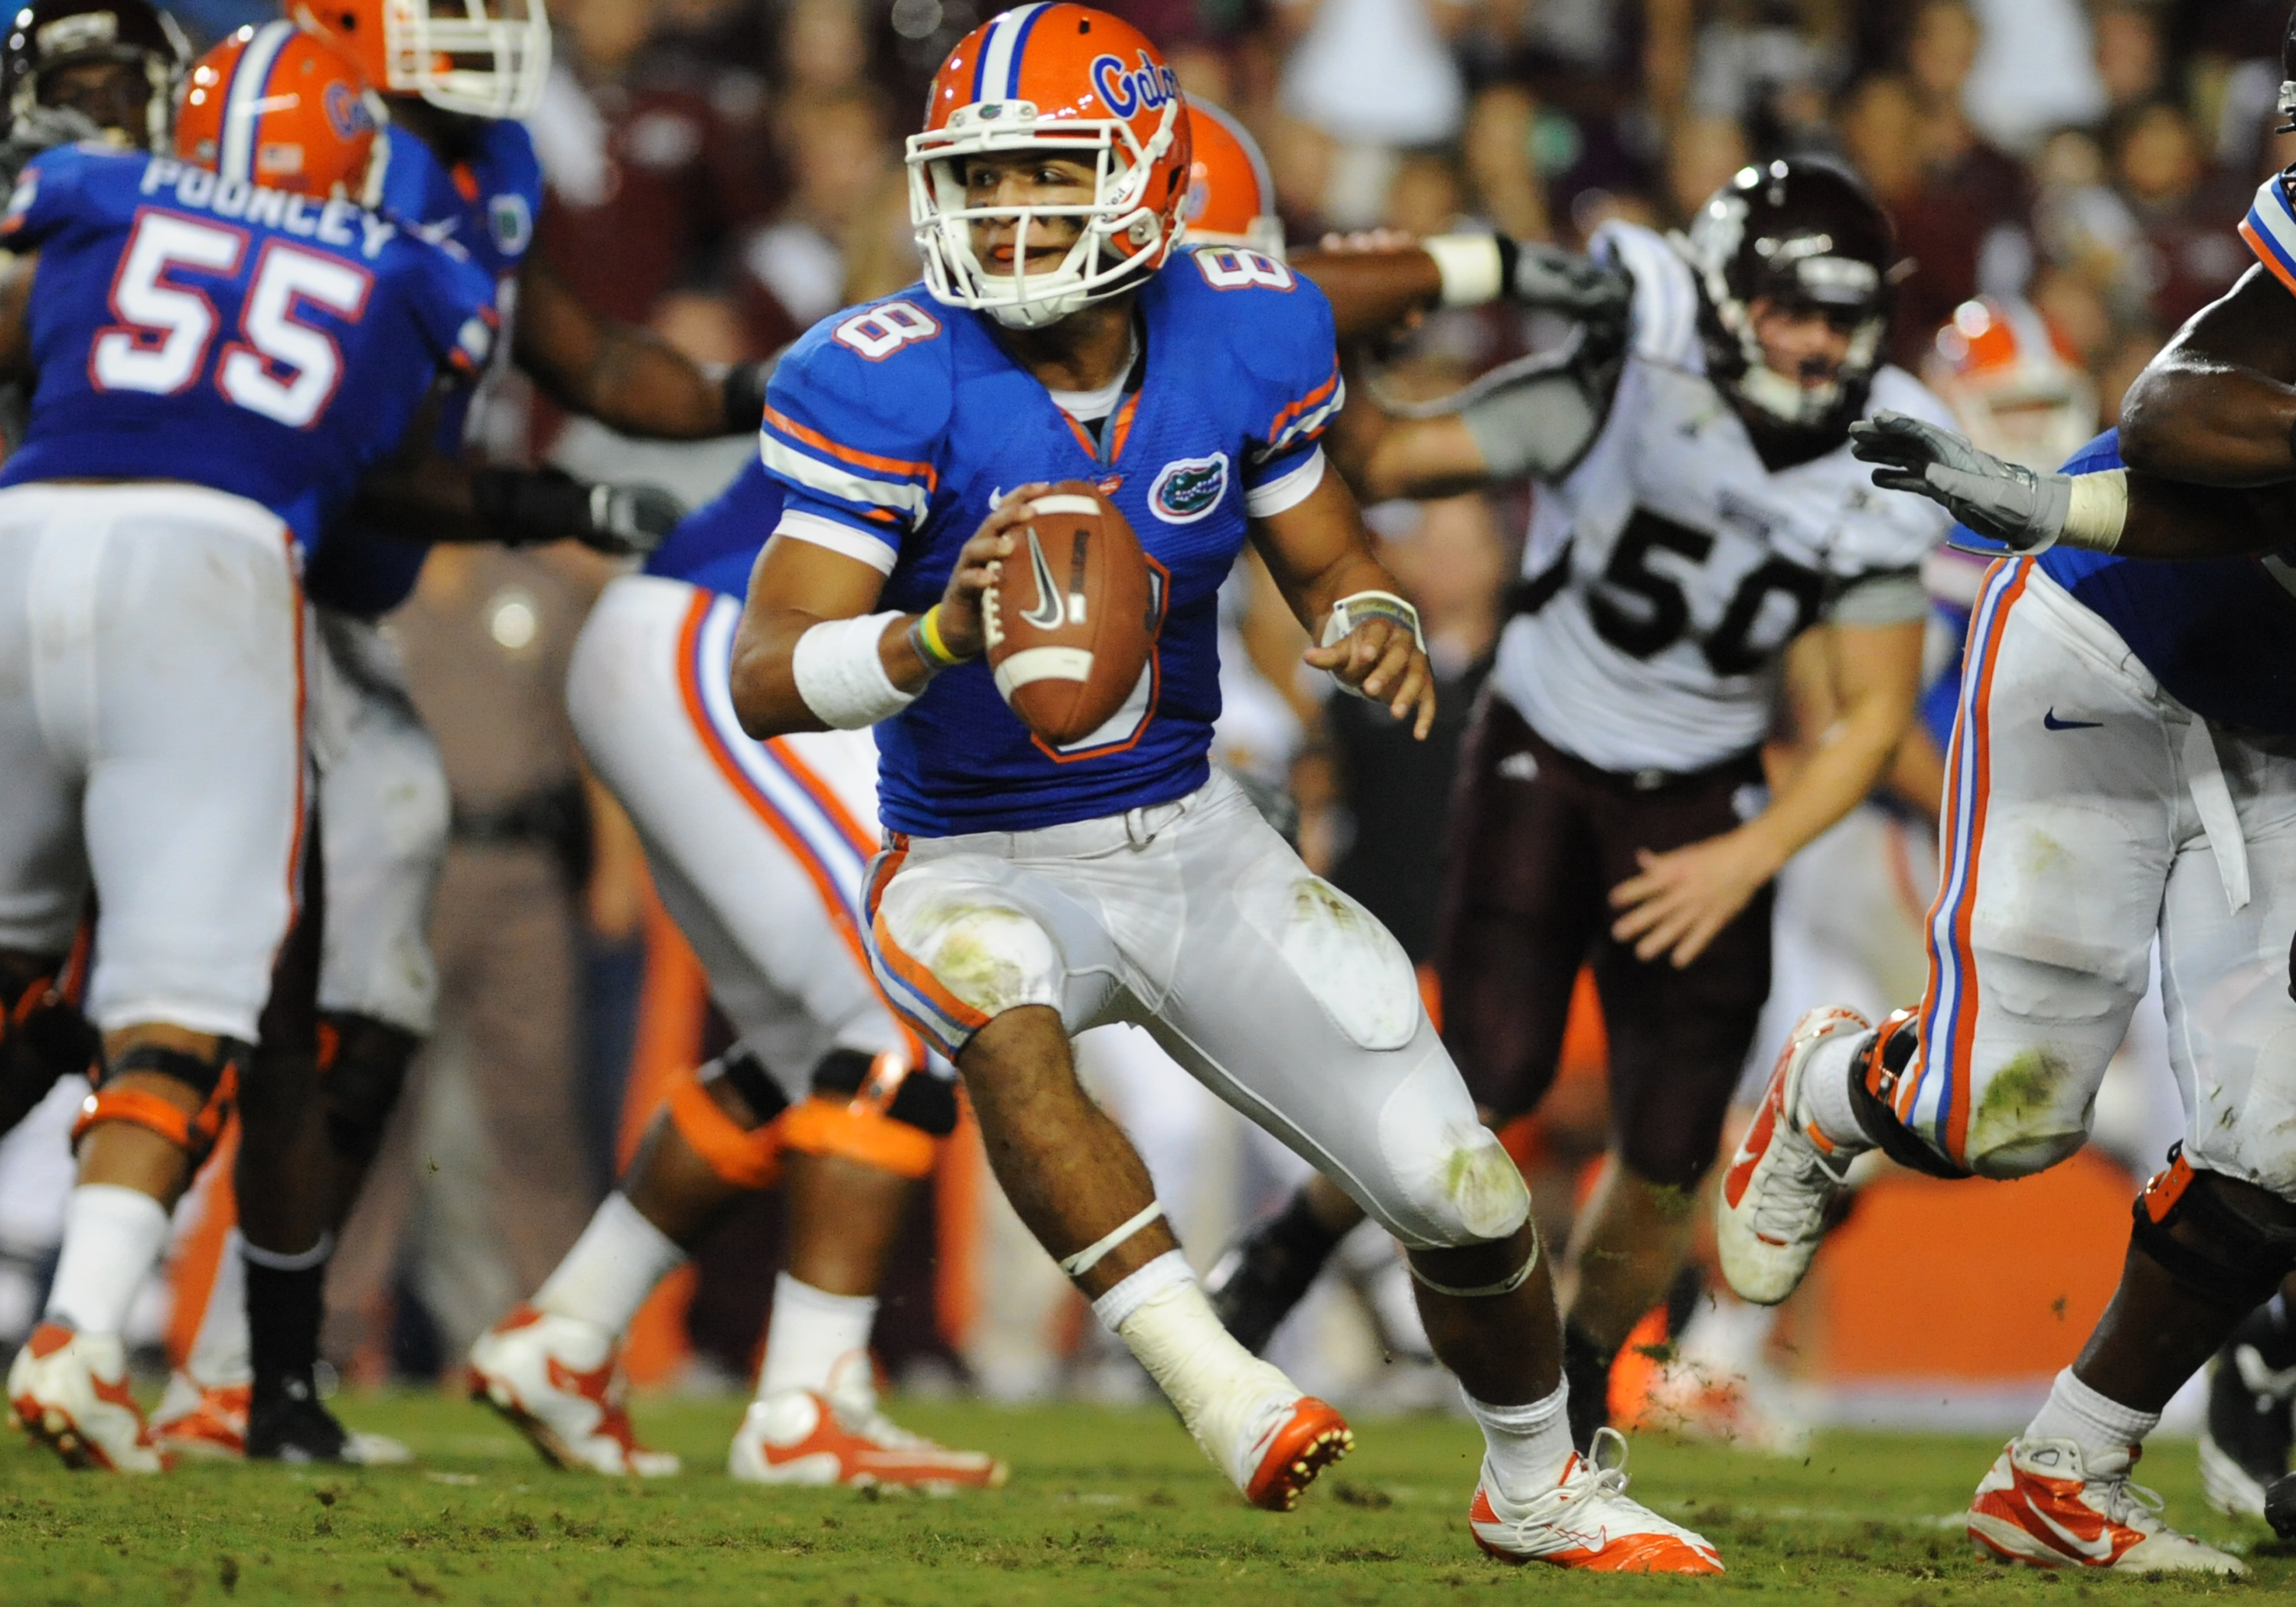 GAINESVILLE, FL - OCTOBER 16:  Quarterback Trey Burton #8 of the Florida Gators looks to lateral against the Mississippi State Bulldogs  October 16, 2010 Ben Hill Griffin Stadium at Gainesville, Florida.  (Photo by Al Messerschmidt/Getty Images)